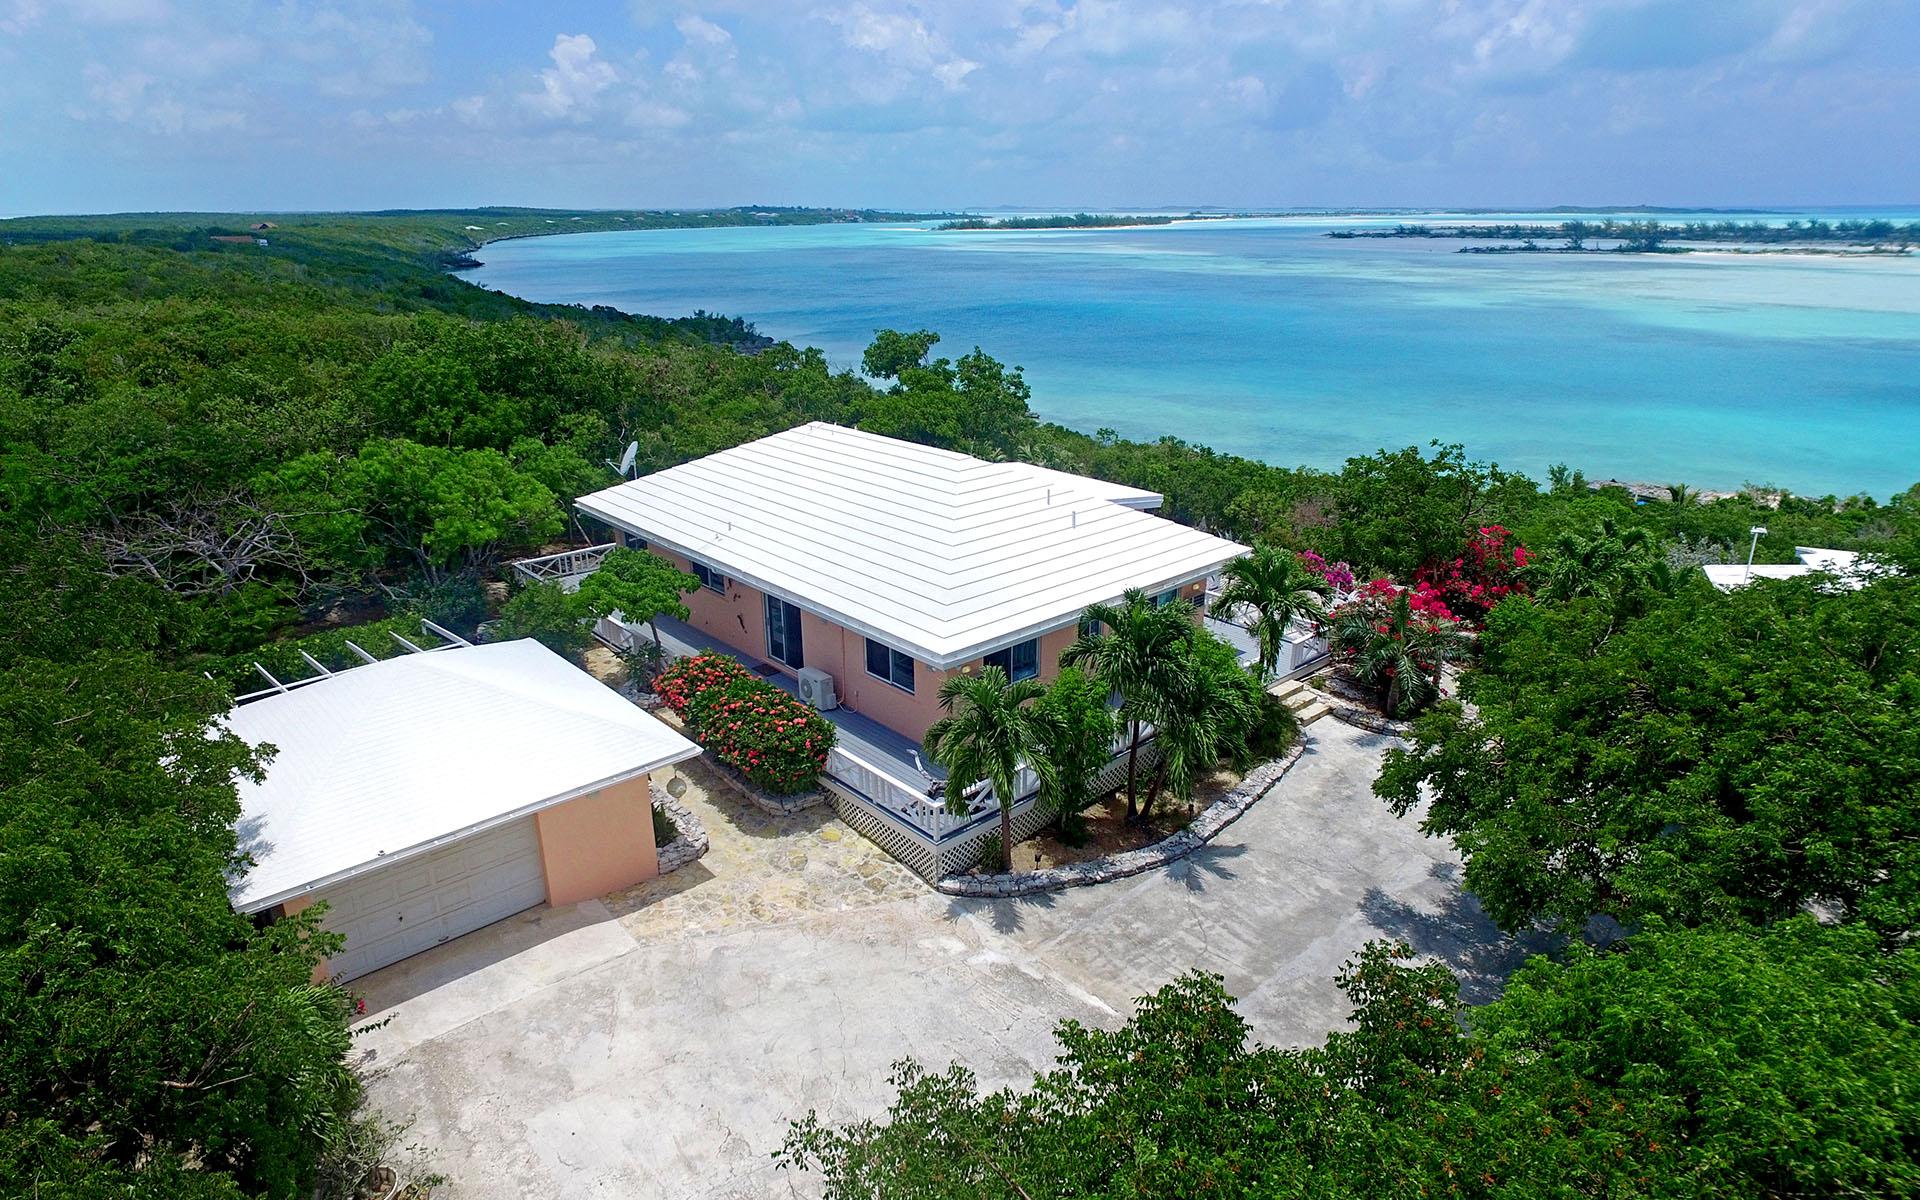 Single Family Home for Sale at Madeira - Charming Home and Cottage Overlooking Moriah Harbour Exumas, Bahamas